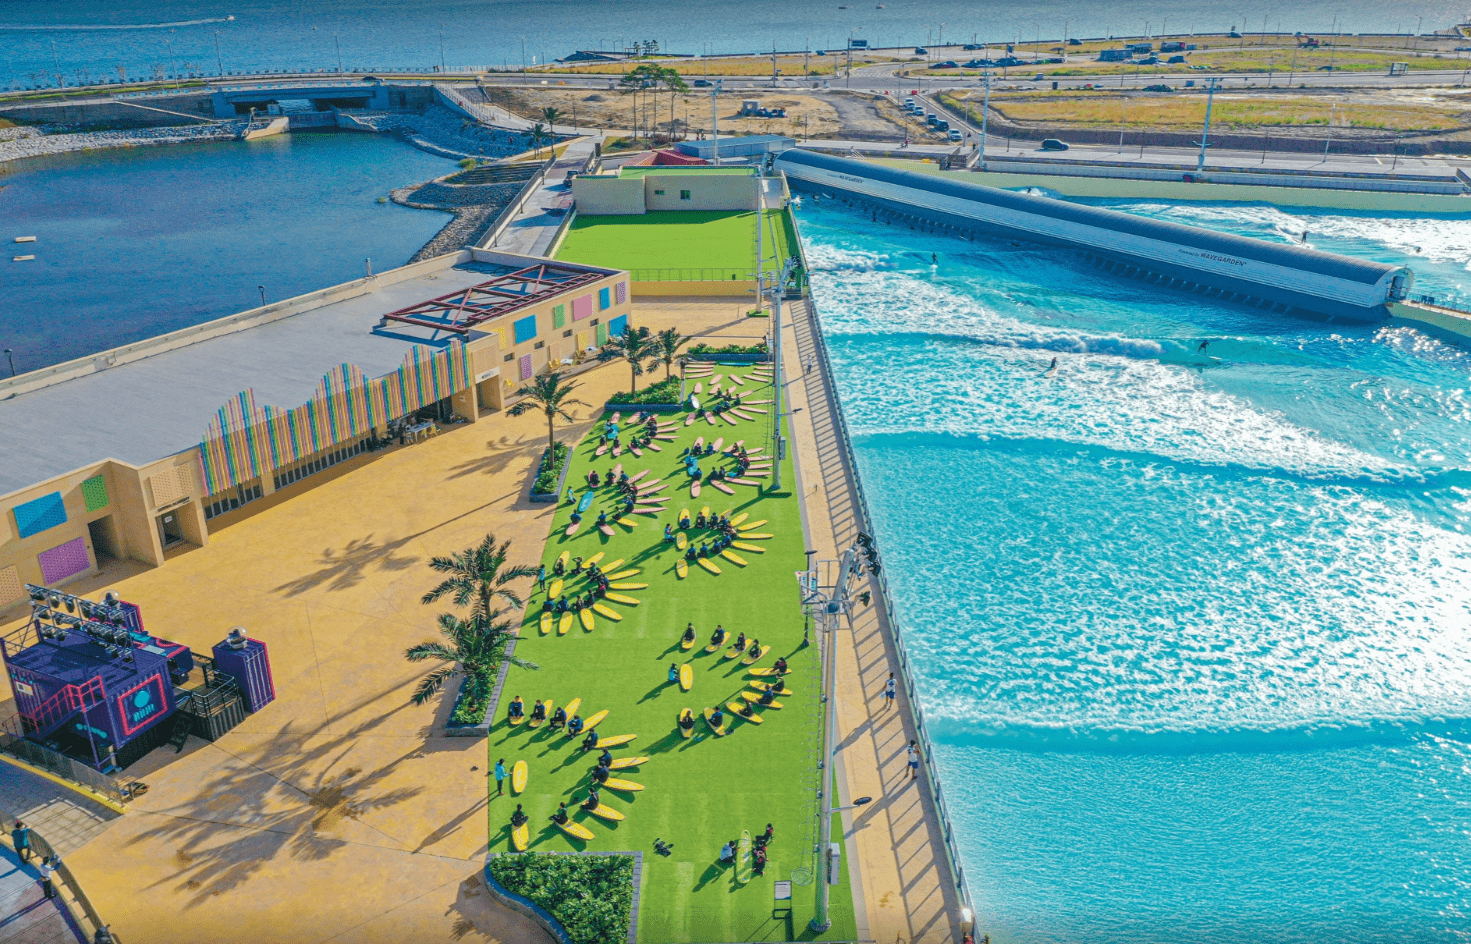 Wave park Discount Ticket (Surfing and Water Park in Korea)